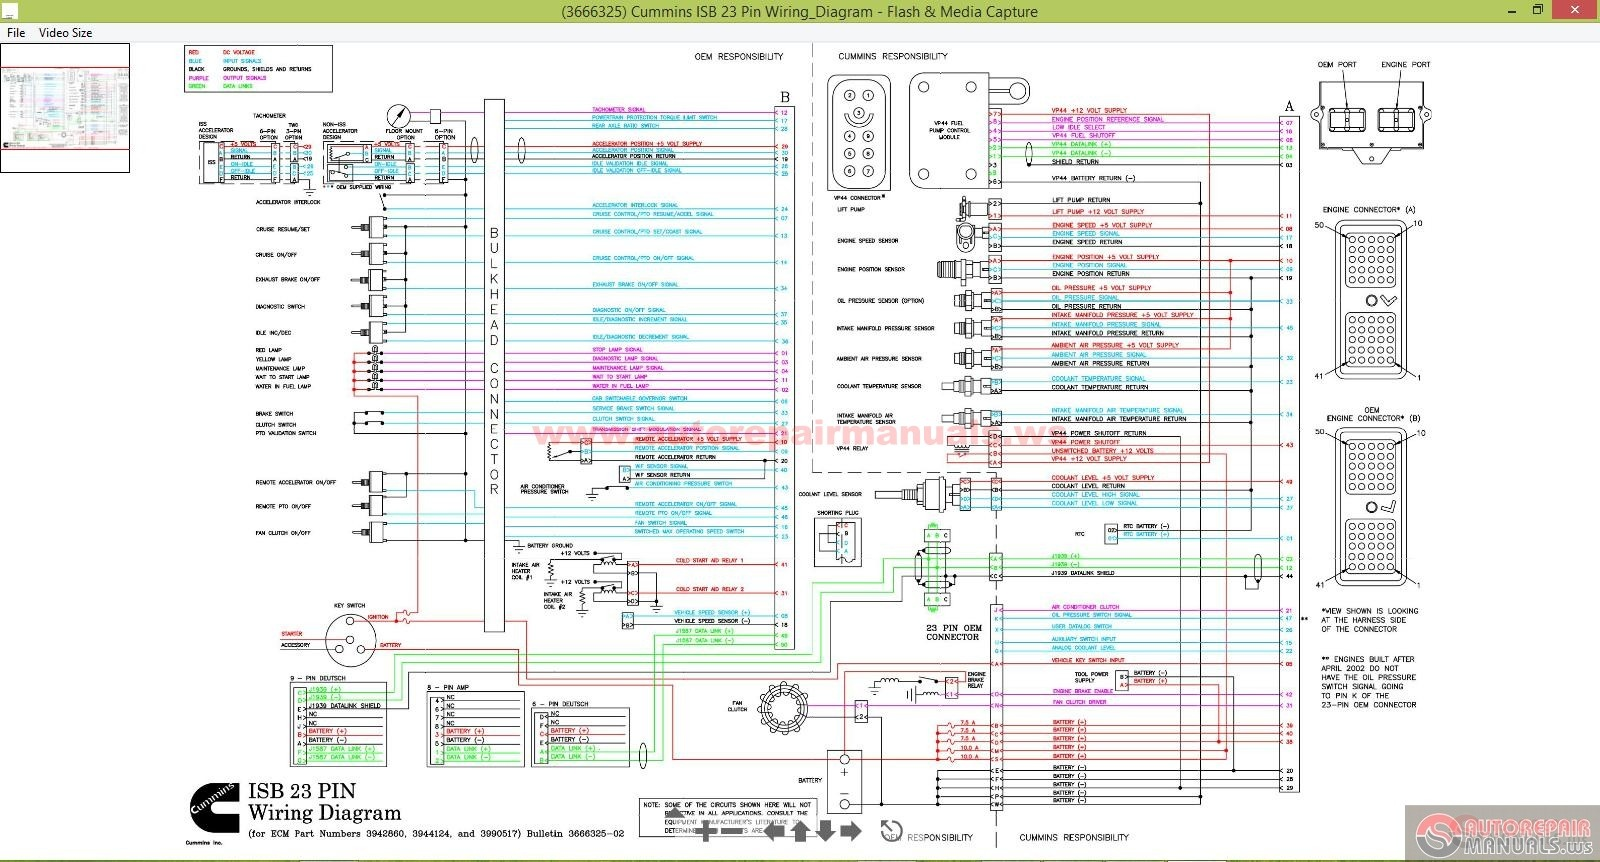 N14 mins Harness Diagram - Free Wiring Diagram For You • Mins N Engine Wiring Diagram on n14 fuel system diagram, n14 ecm pinout diagram, n14 oil diagram, cummins isx engine diagram, n14 cummins harness diagram,